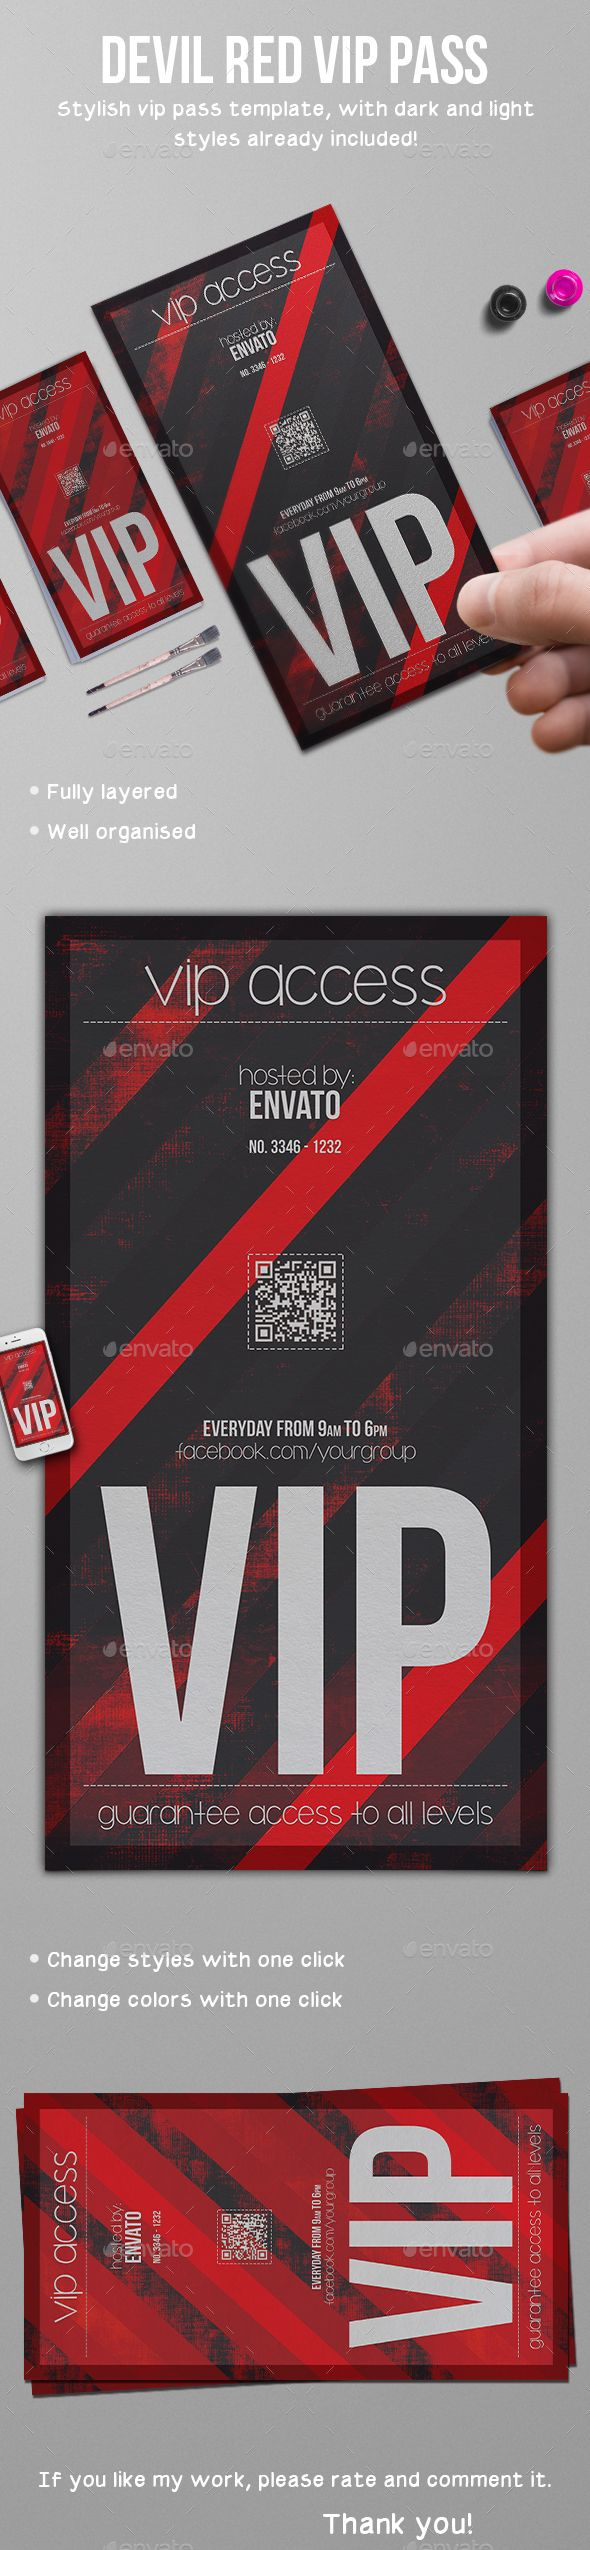 Devil Red Vip Pass Template PSD. Download here: http://graphicriver.net/item/devil-red-vip-pass-template/16215271?ref=ksioks